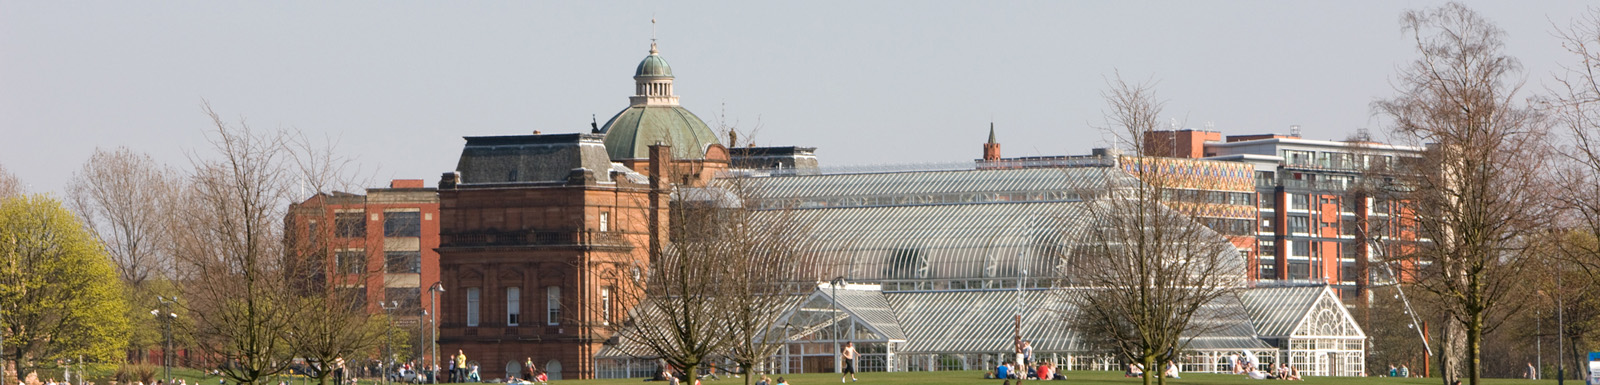 The People's Palace and Winter Gardens at Glasgow Green